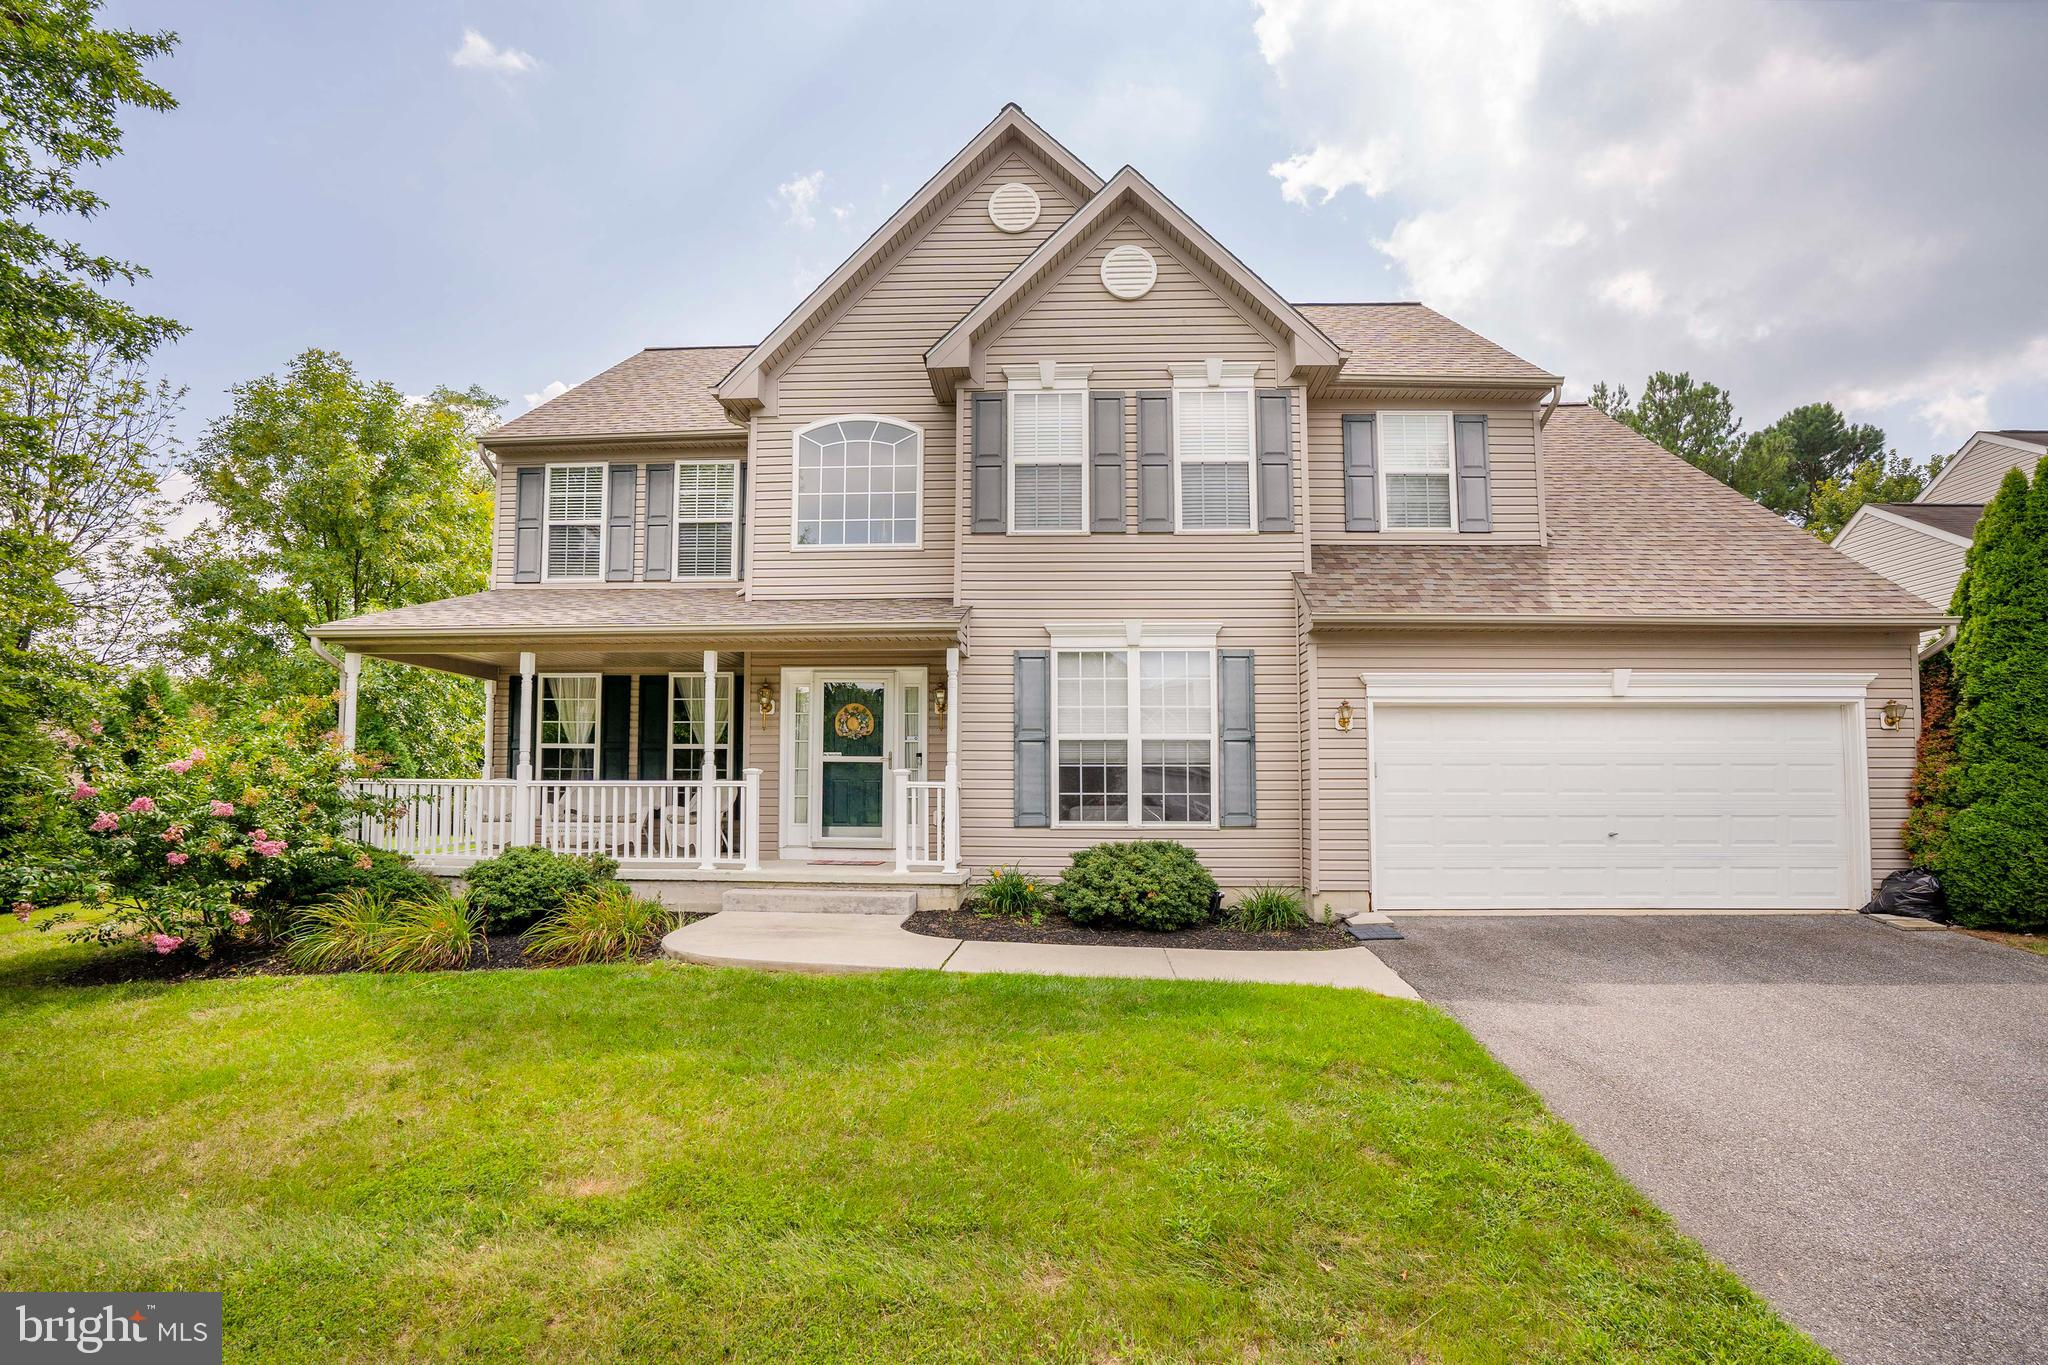 This well loved and maintained home, located in the fantastic neighborhood of Bayview Manor, where pride of ownership shows and friendly waves are a common sight. Immediate proximity to the recreation of the Kirkwood Soccer Club. Right as you arrive you will be drawn to the premium lot with well-maintained landscaping.  Walk up to the welcoming porch! 2-Car Garage with extra ceiling storage, NEW ROOF-2019, NEW HEATER-2019. The 4-bedroom, 2.5 bath floor plan begins with a wide foyer for a bright homey welcome. The living room is complete with crown molding.  Beyond the dining room, the kitchen was wisely enlarged to make room for GRANITE countertops, an island and a breakfast area that opens to a sunny Trex deck. The family room, complete with Brazilian Teak wood floors, two story high ceilings, a fireplace, skylights, and a wall of windows also opens to a wooded view, this one offering relaxation. The yard beyond is just heavenly with plenty of privacy plantings and spring blooms, as well as the luxury of open space and woods adjoining.  Office or den (the possibility is yours!)  conveniently located on the main floor.  Main suite further impresses with vaulted ceilings, walk-in closet and a private, bright bathroom with loads of storage and a huge soaker tub.  Down the hall you will find three large, freshly painted and newly carpeted bedrooms.  Don't miss the clean basement with endless possibilities.  Egress window already built-in and two new sump pumps!! This yard is one you will not want to miss.  A rare property that backs up to woods.  Call today to schedule your tour!